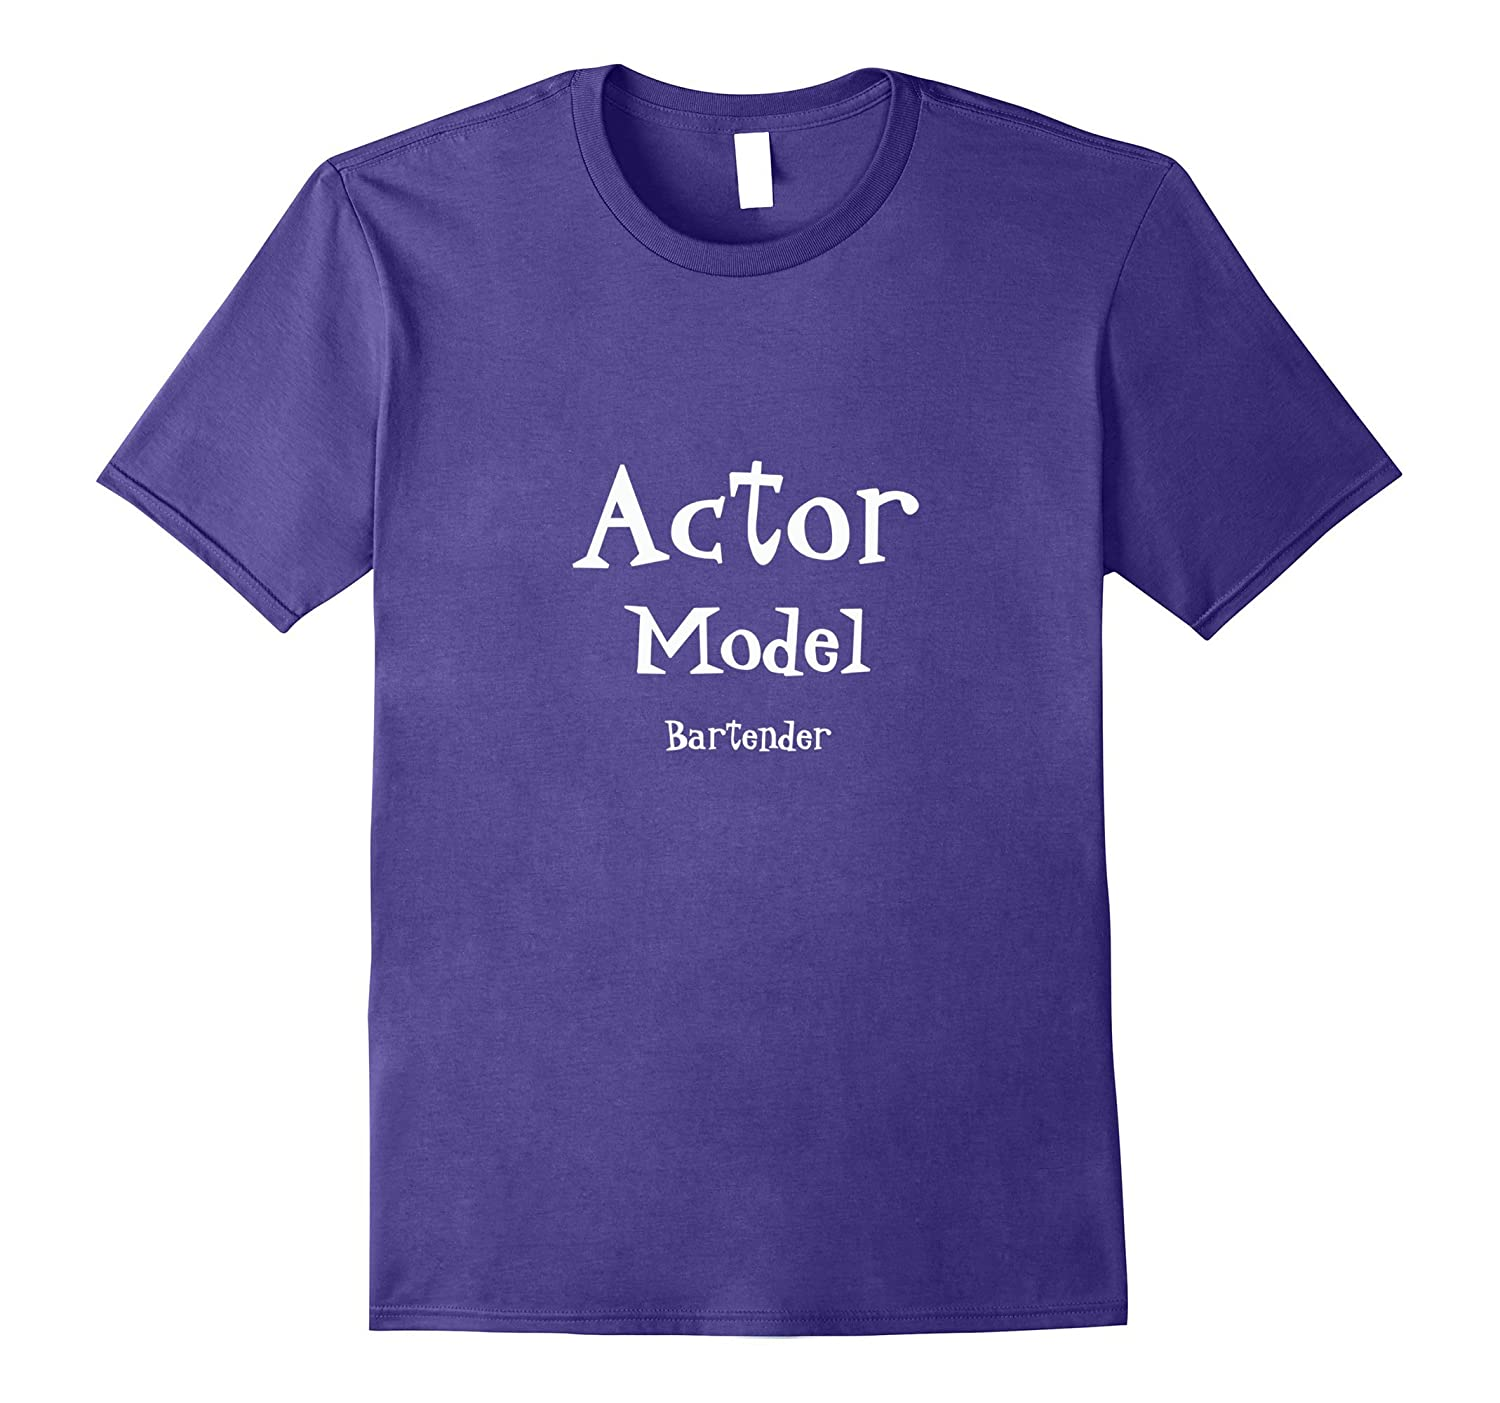 Actor Model Bartender T-shirt for Theater Film and TV-TJ